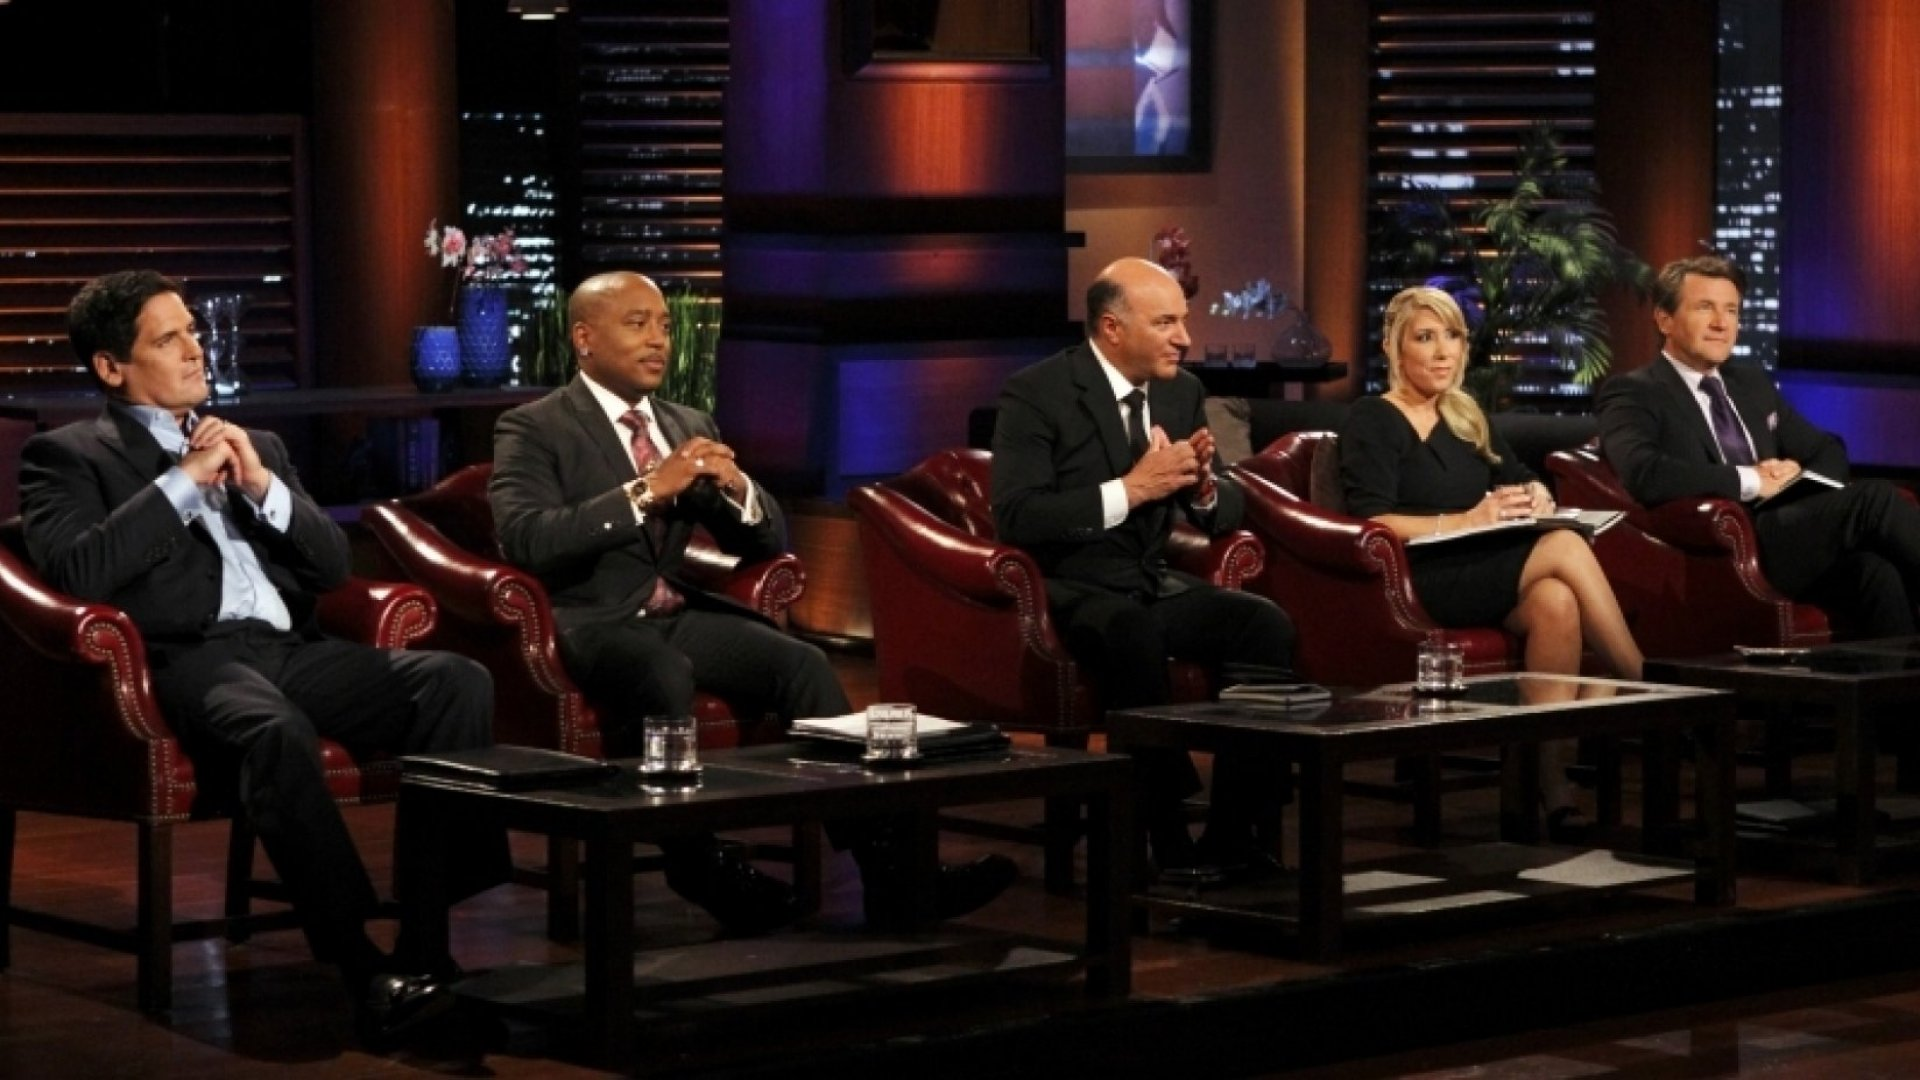 Mark Cuban, Daymond John, Kevin O'Leary, Lori Greiner, and Robert Herjavec on <em>Shark Tank</em>.